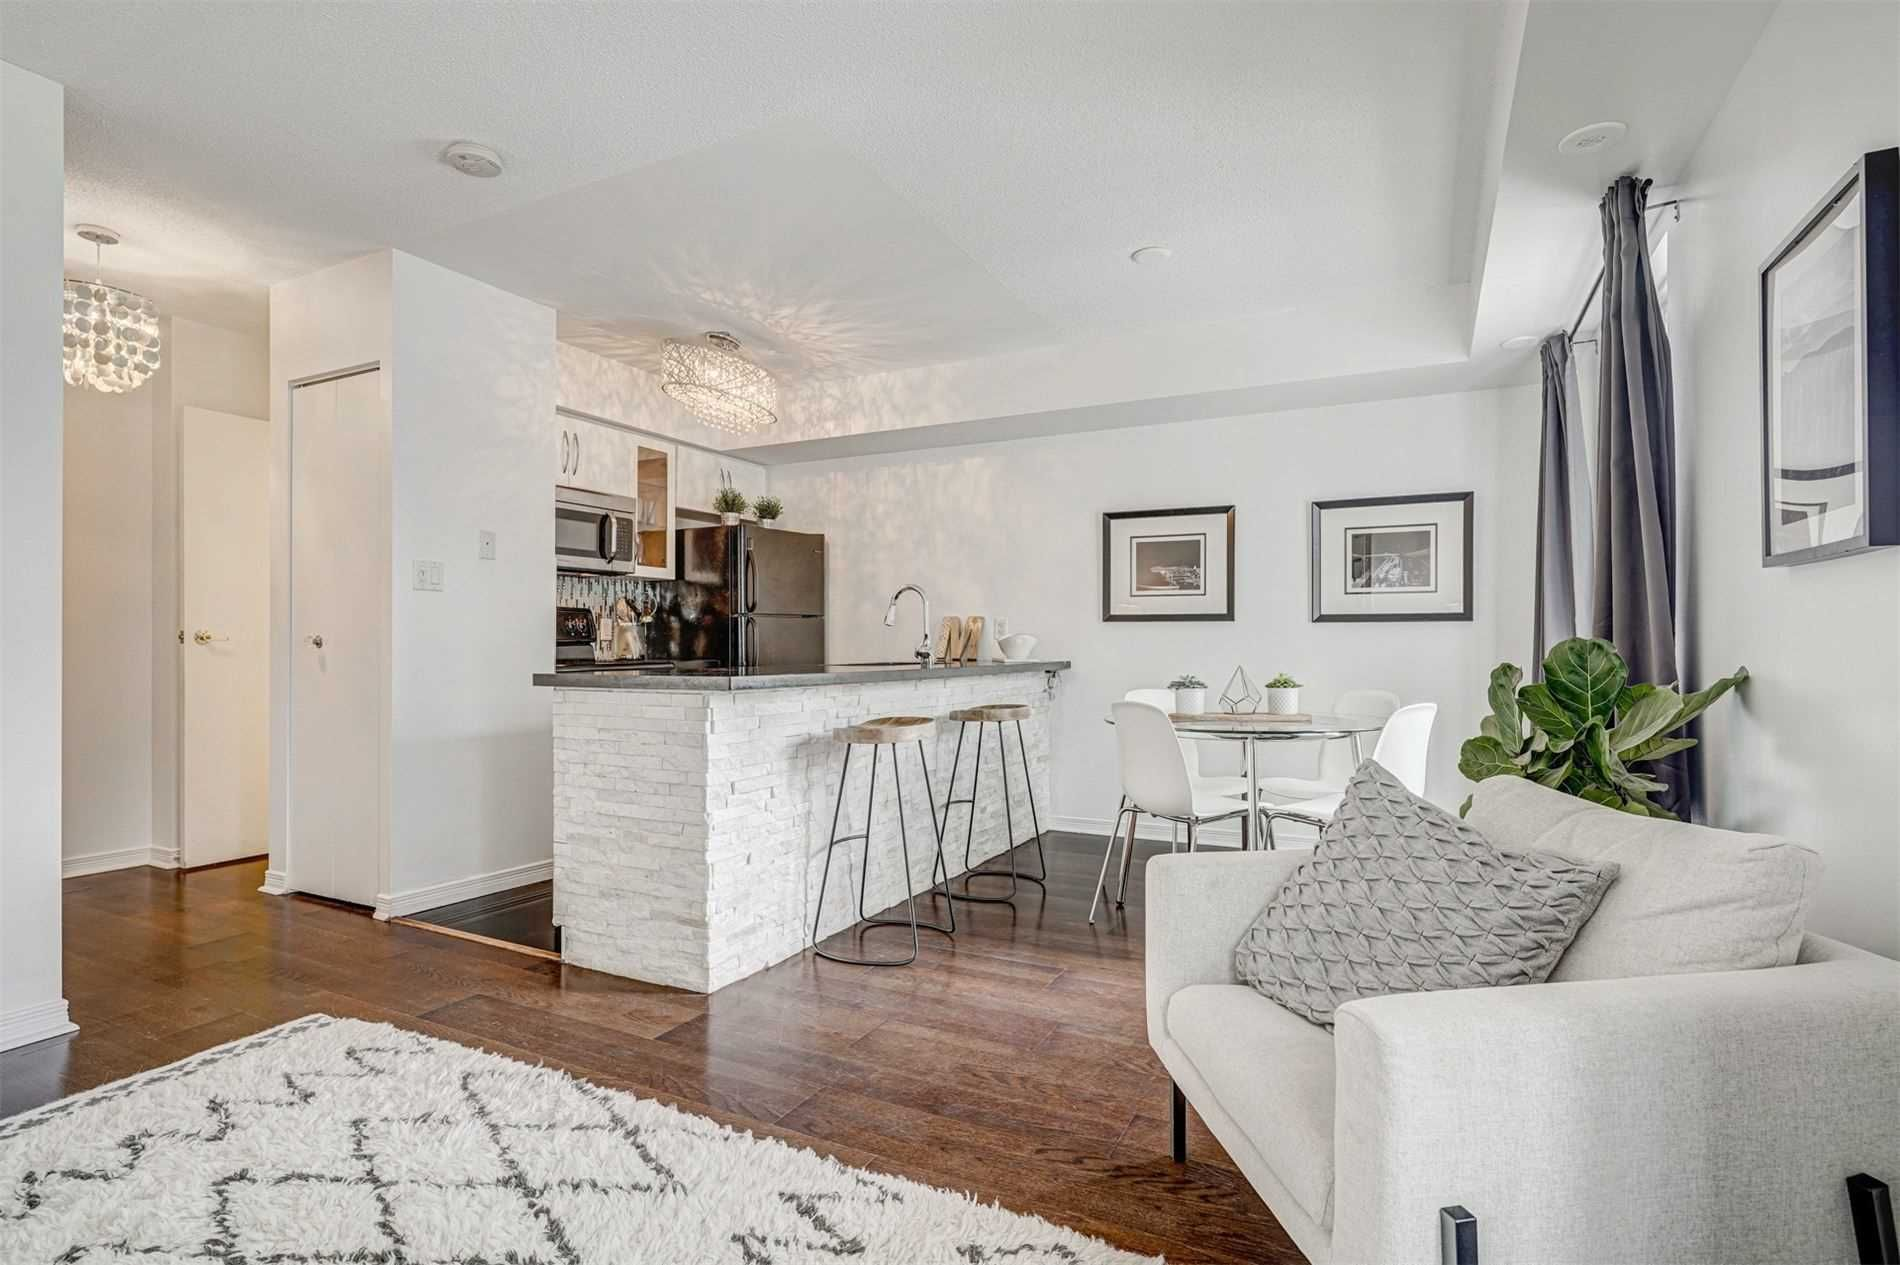 22 Western Battery Rd, unit 106 for sale in Toronto - image #2